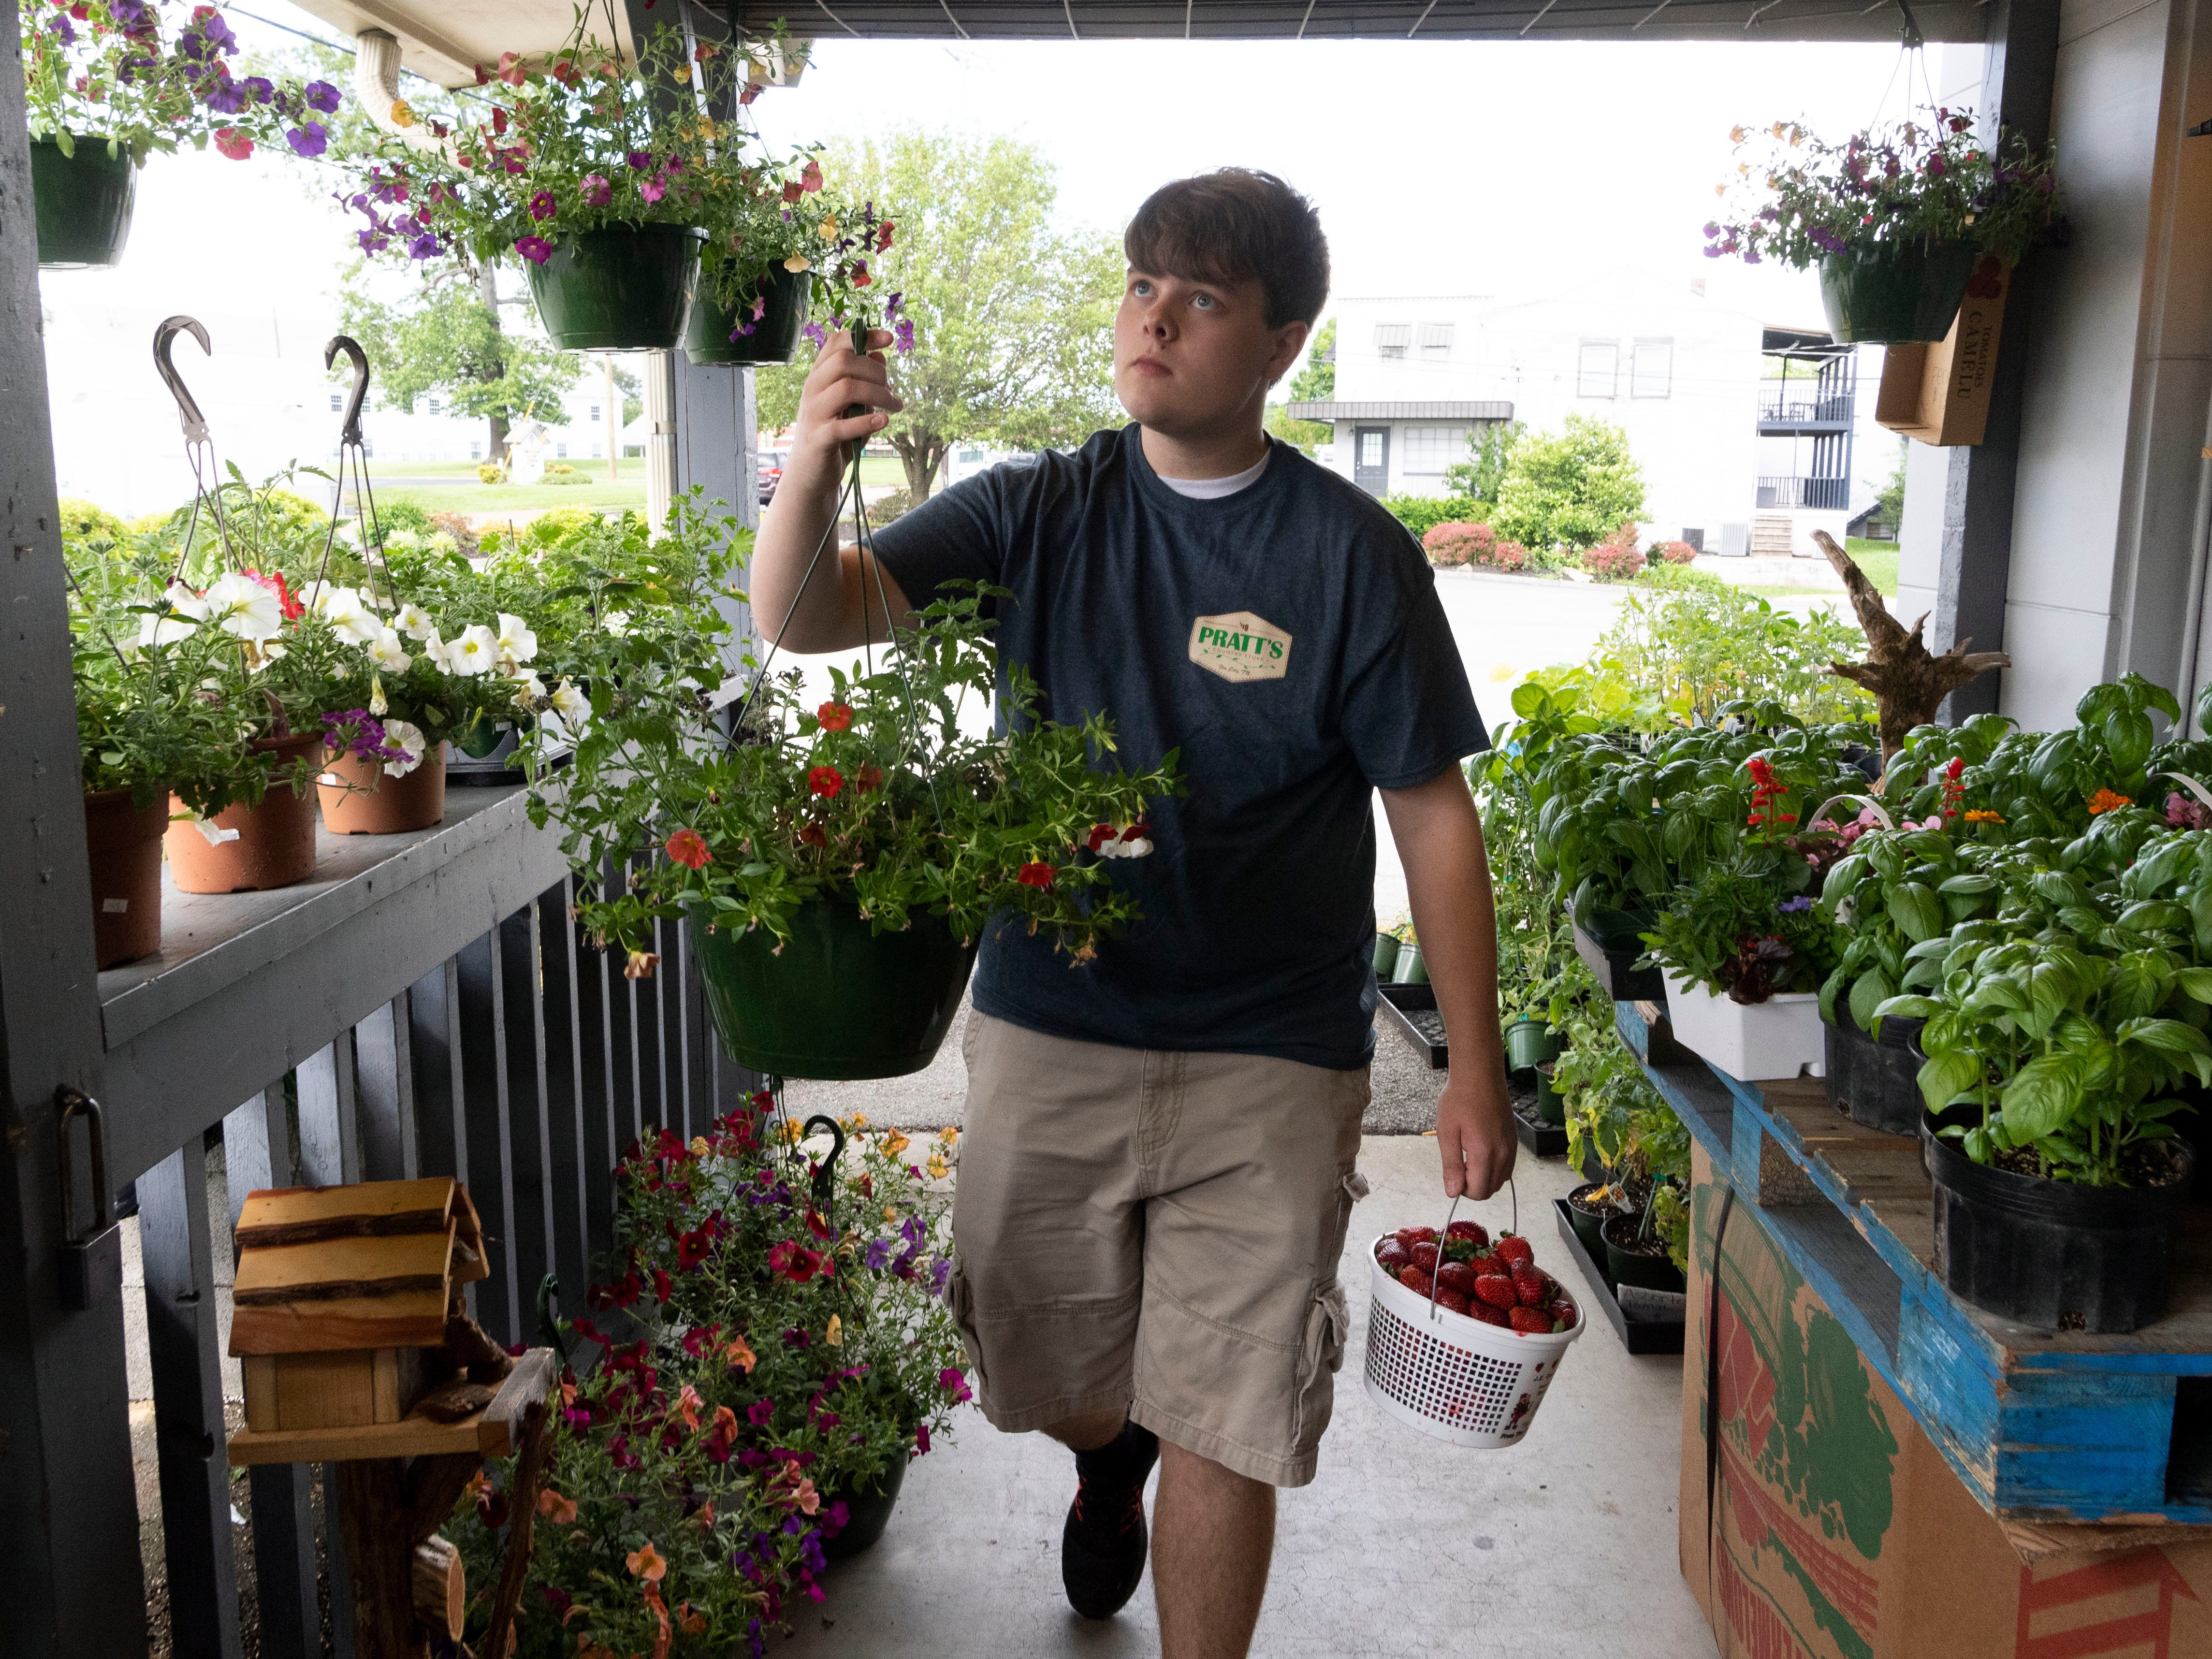 Knoxville Summer Jobs For Teens Tips For Applying What The Law Says